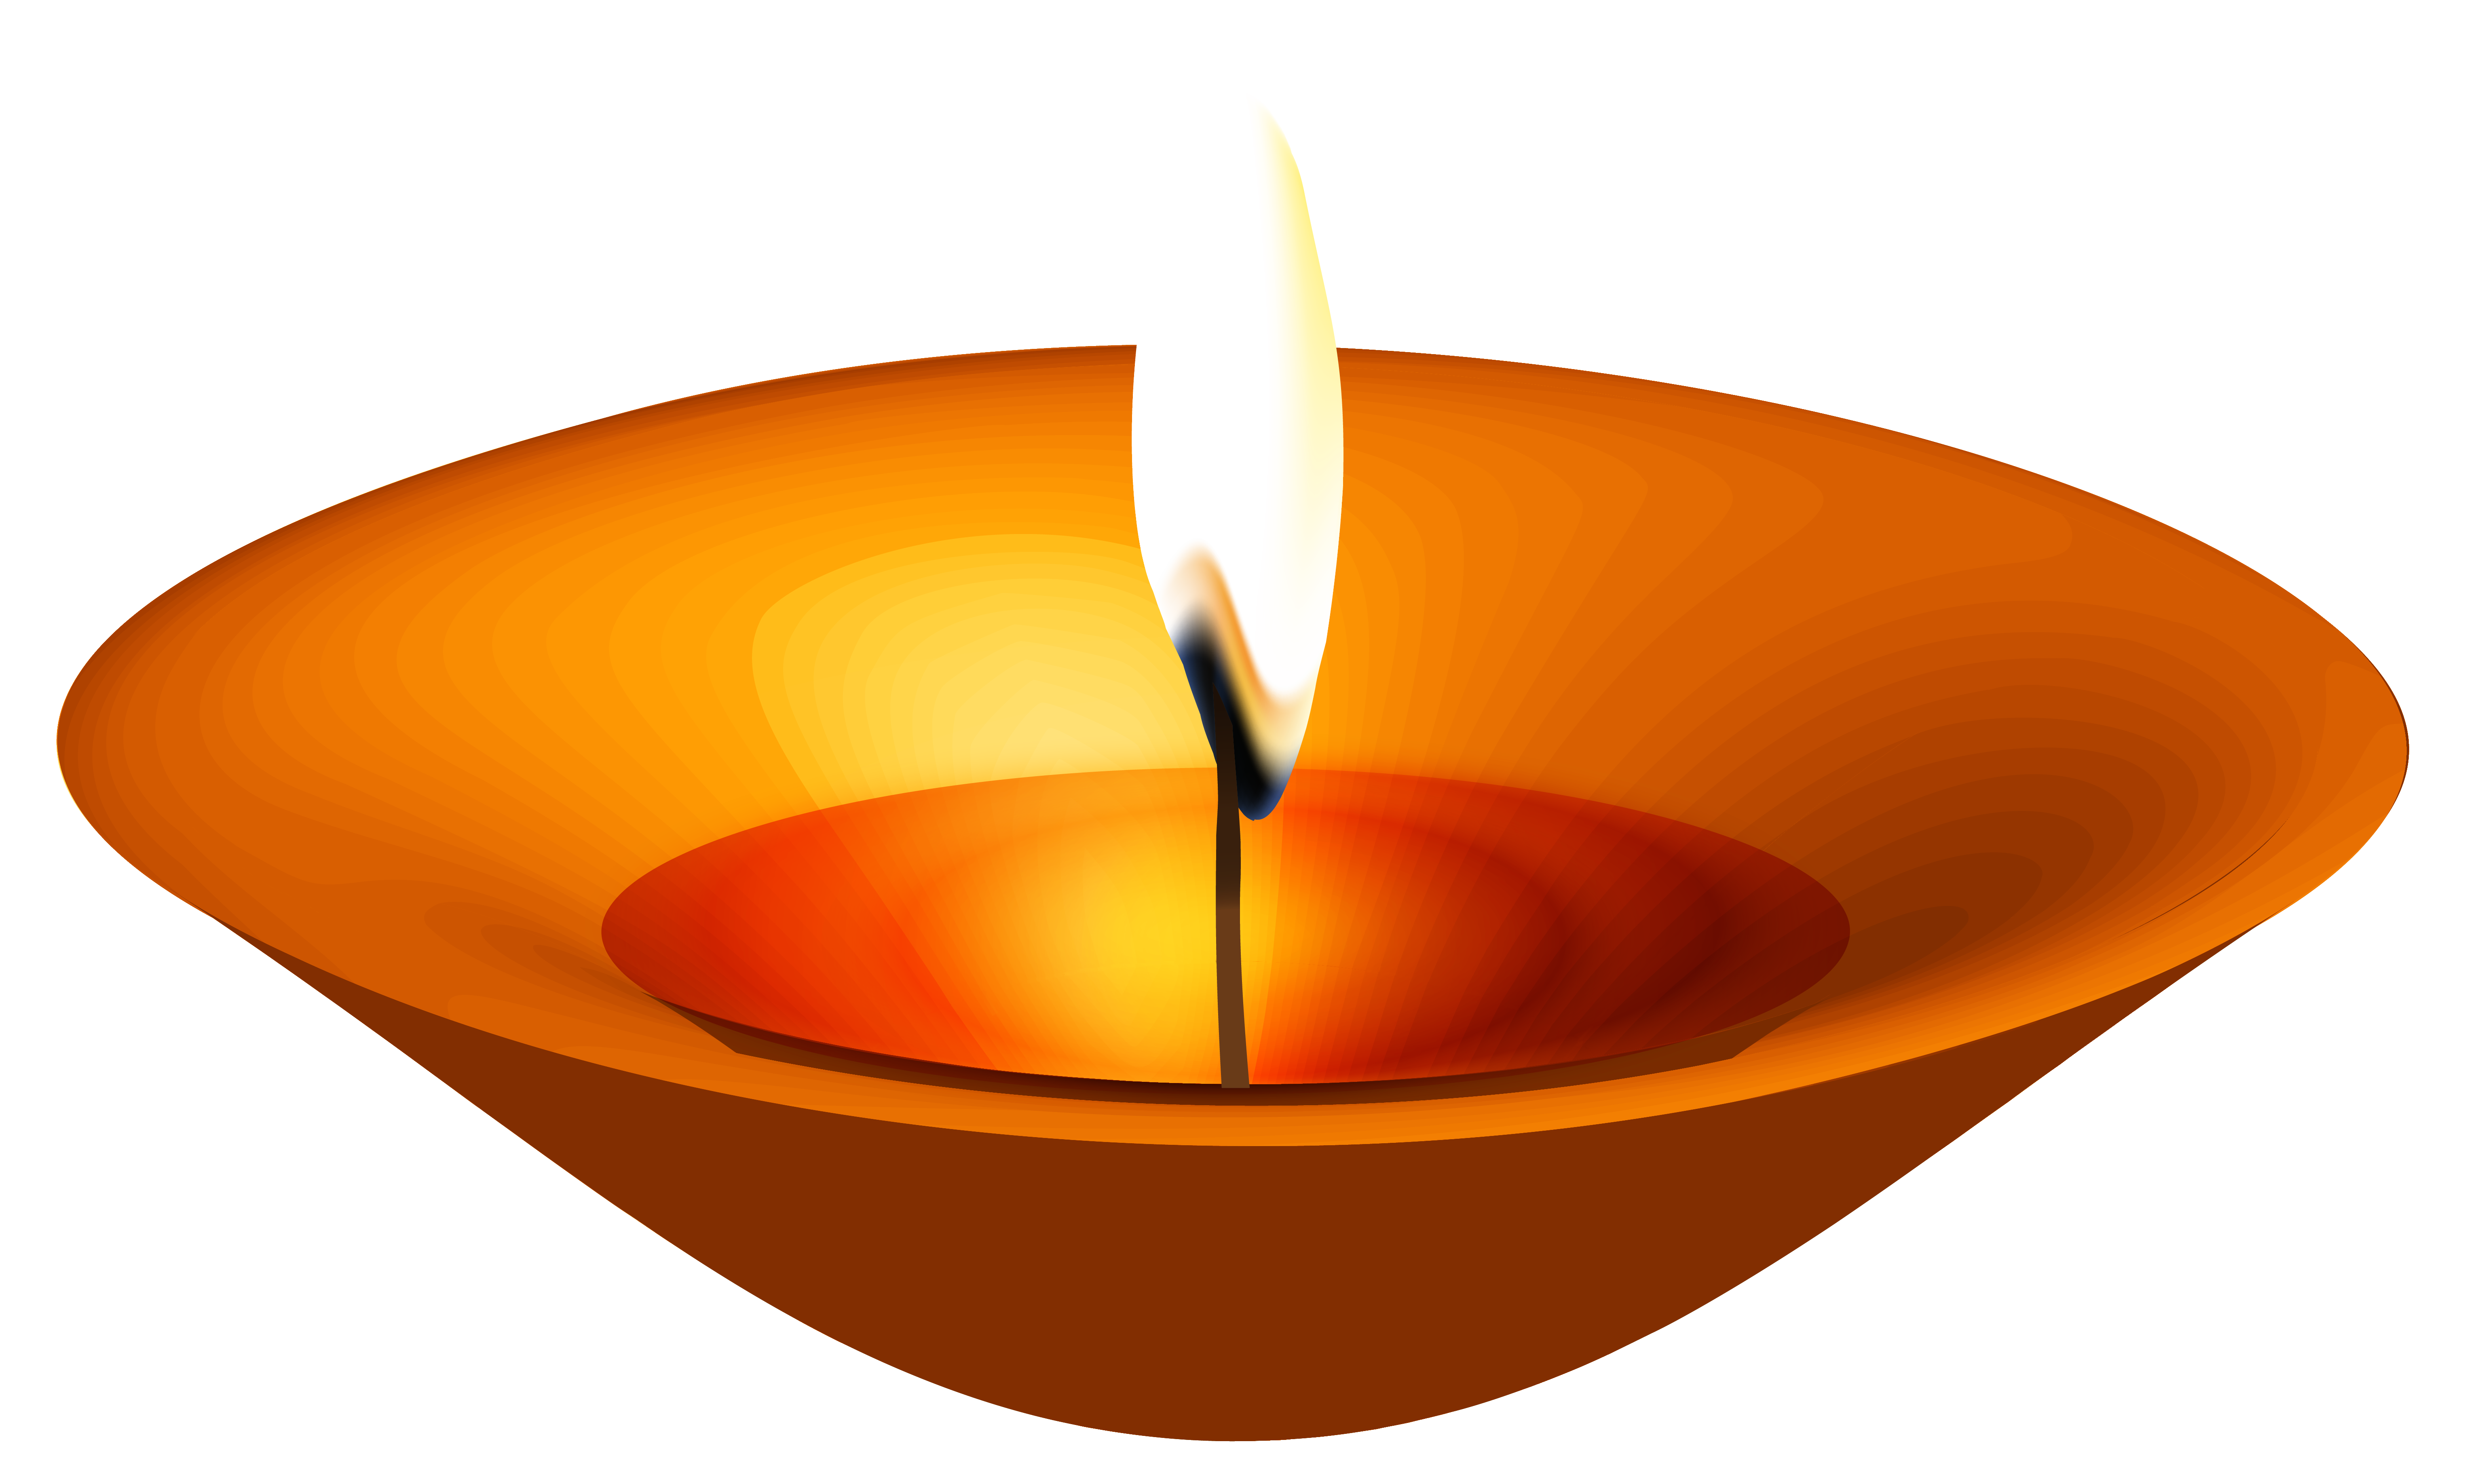 Candle HD PNG - 119248